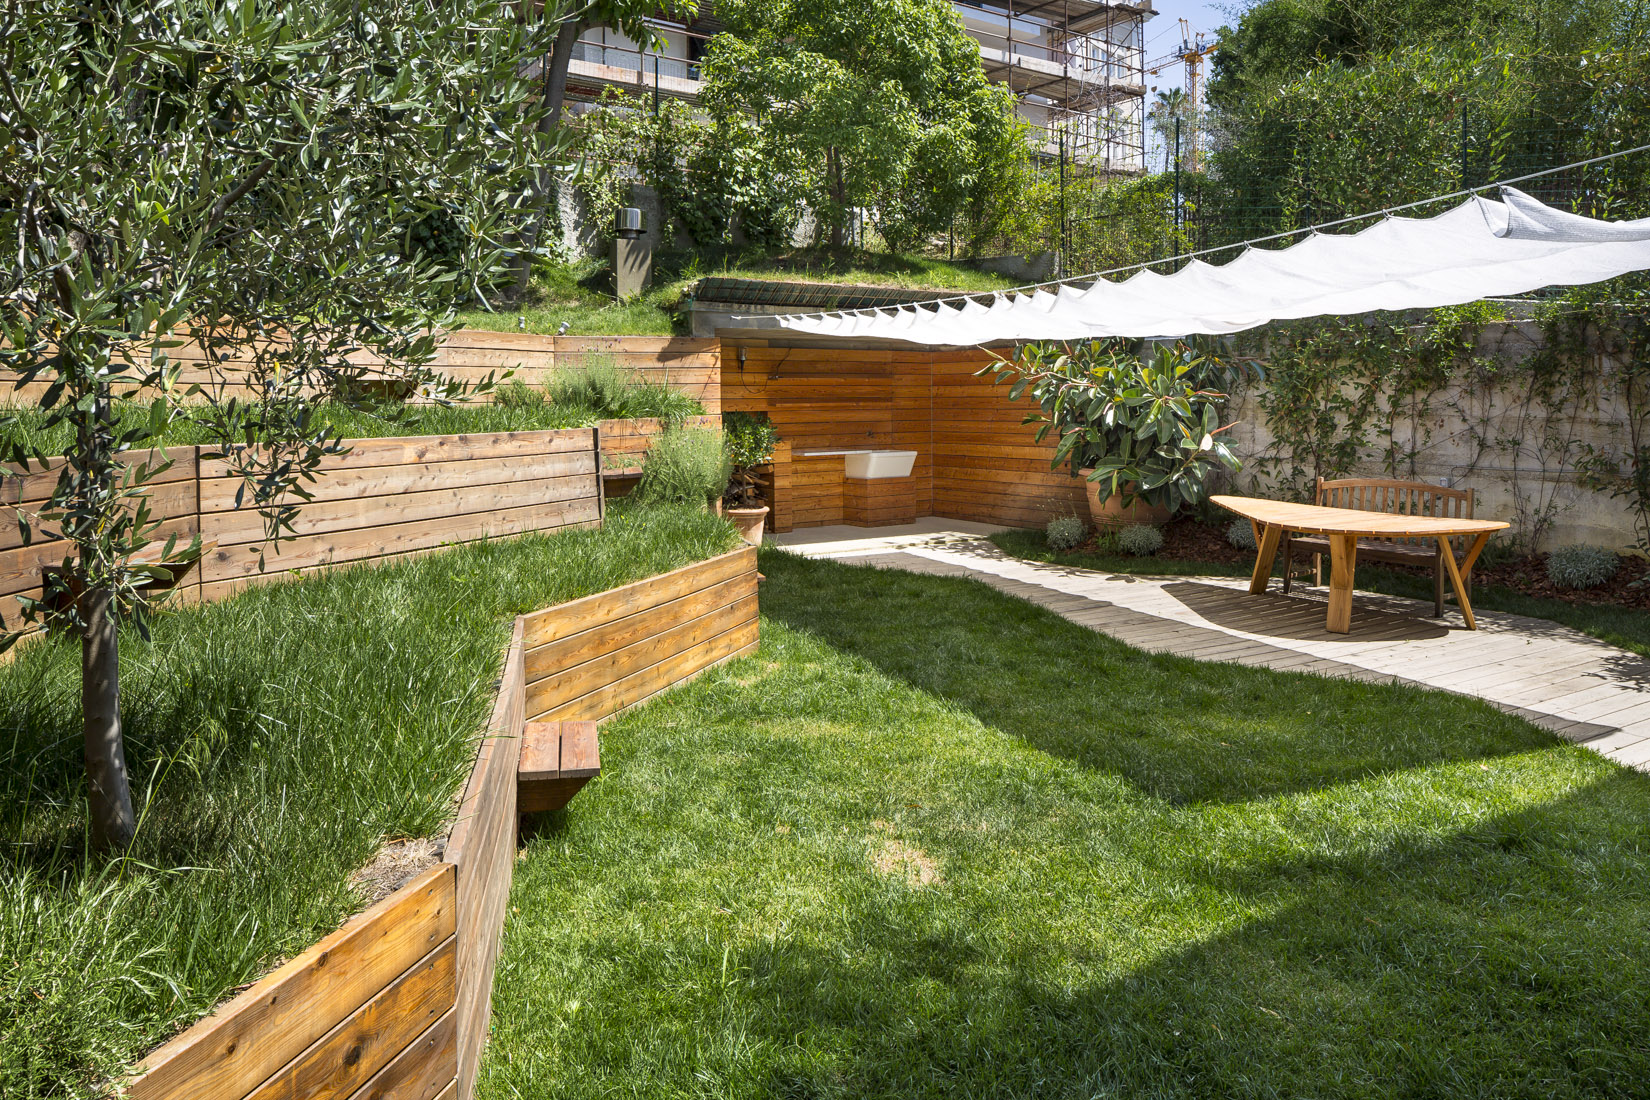 Sergio grazia nicola spinetto architecte jardin for Architecte jardin